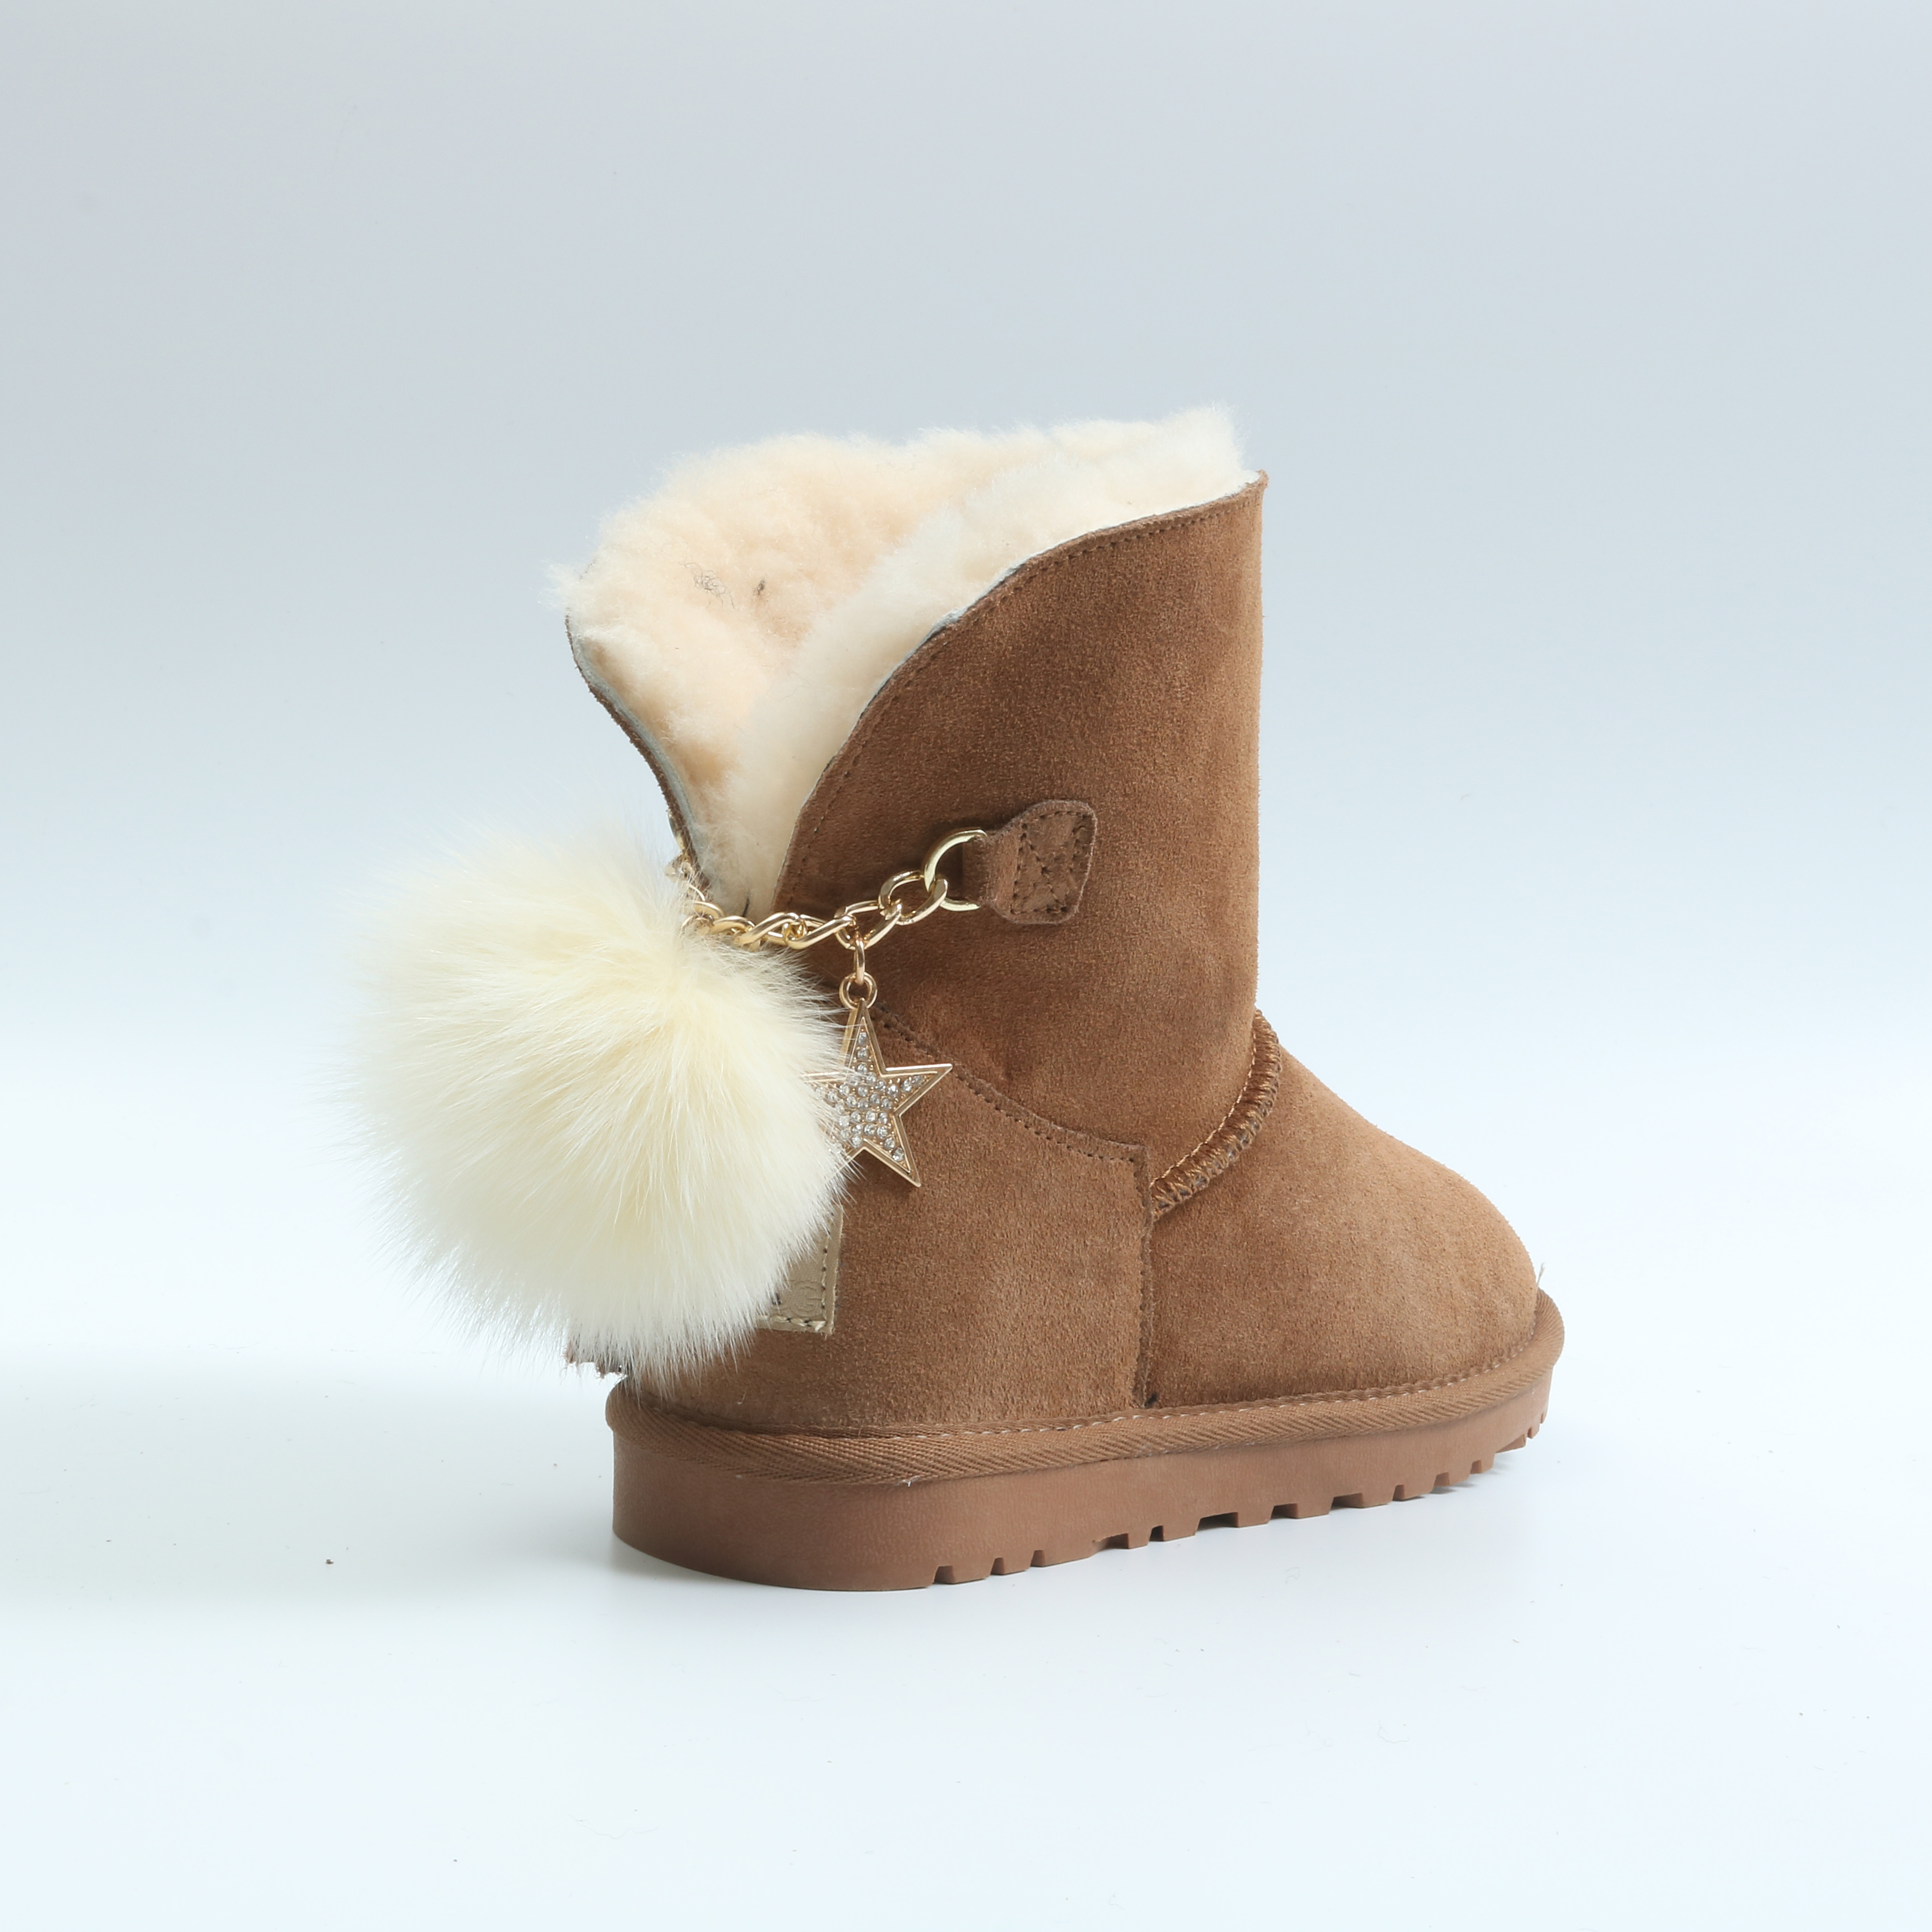 04694696f 2018 Fashion Ladies Winter Boots New Sheep Wool And Leather Half Boot Snow  Boots For Ladies In Winter - Buy Sheep Wool And Leather,2018 Fashion Ladies  ...